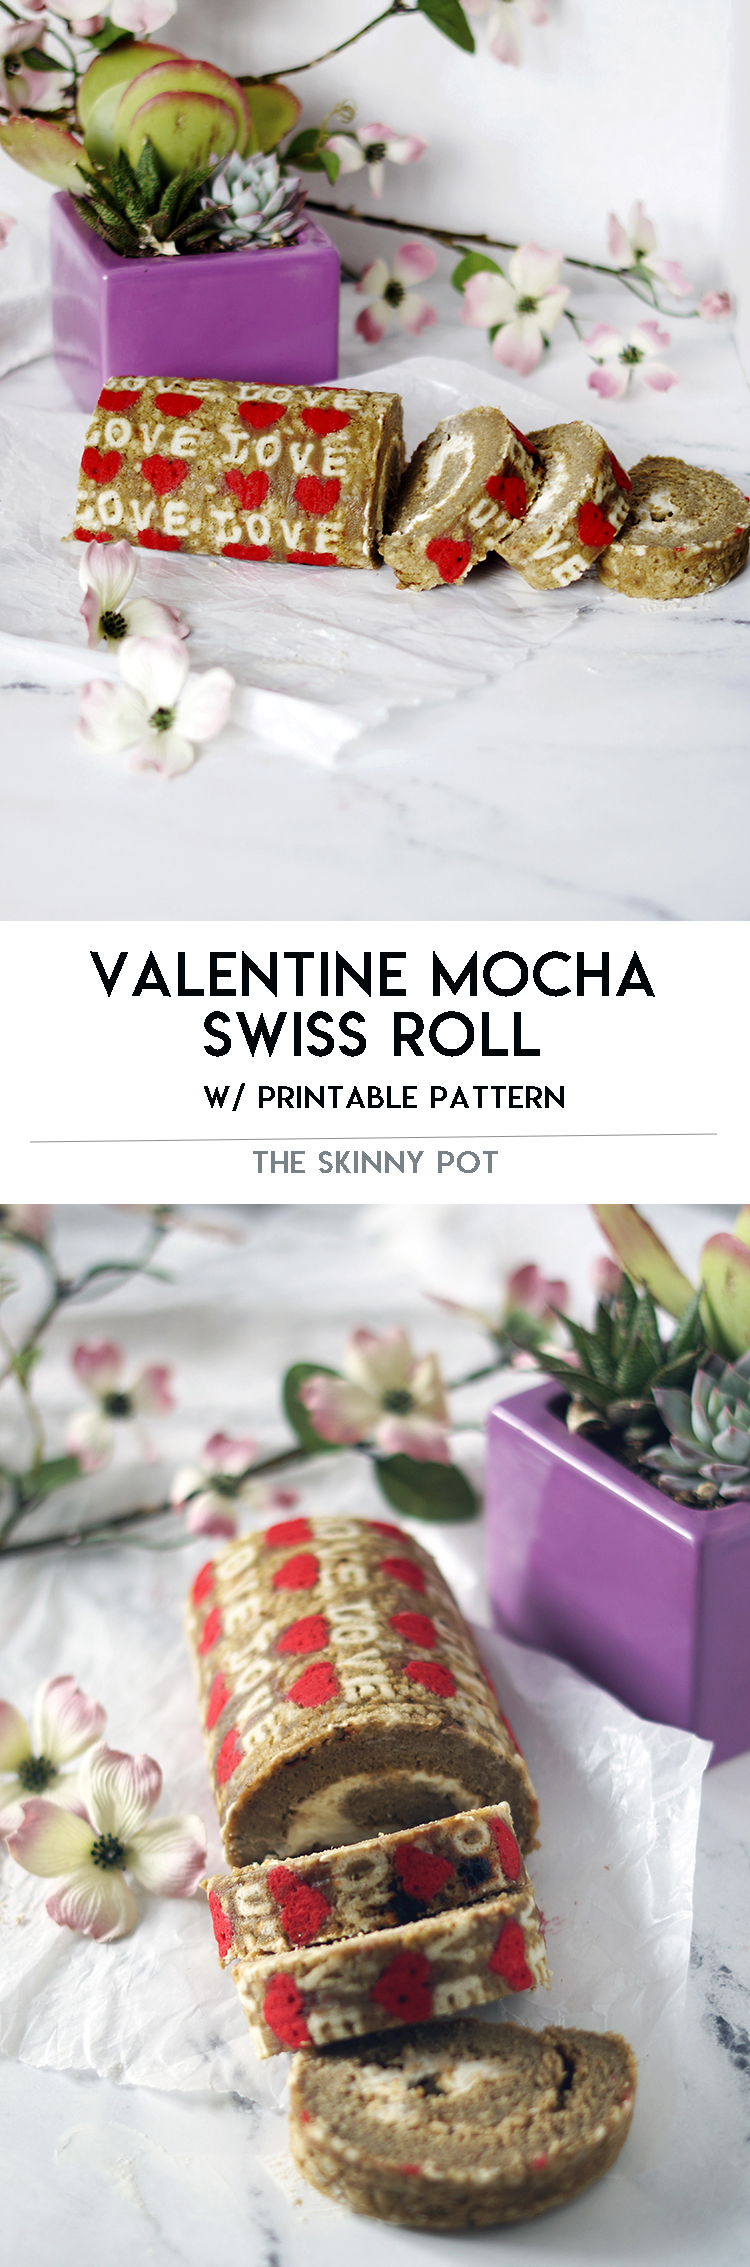 Tested recipe, print the free pattern, tips on how to roll. And amaze your friends and love ones.